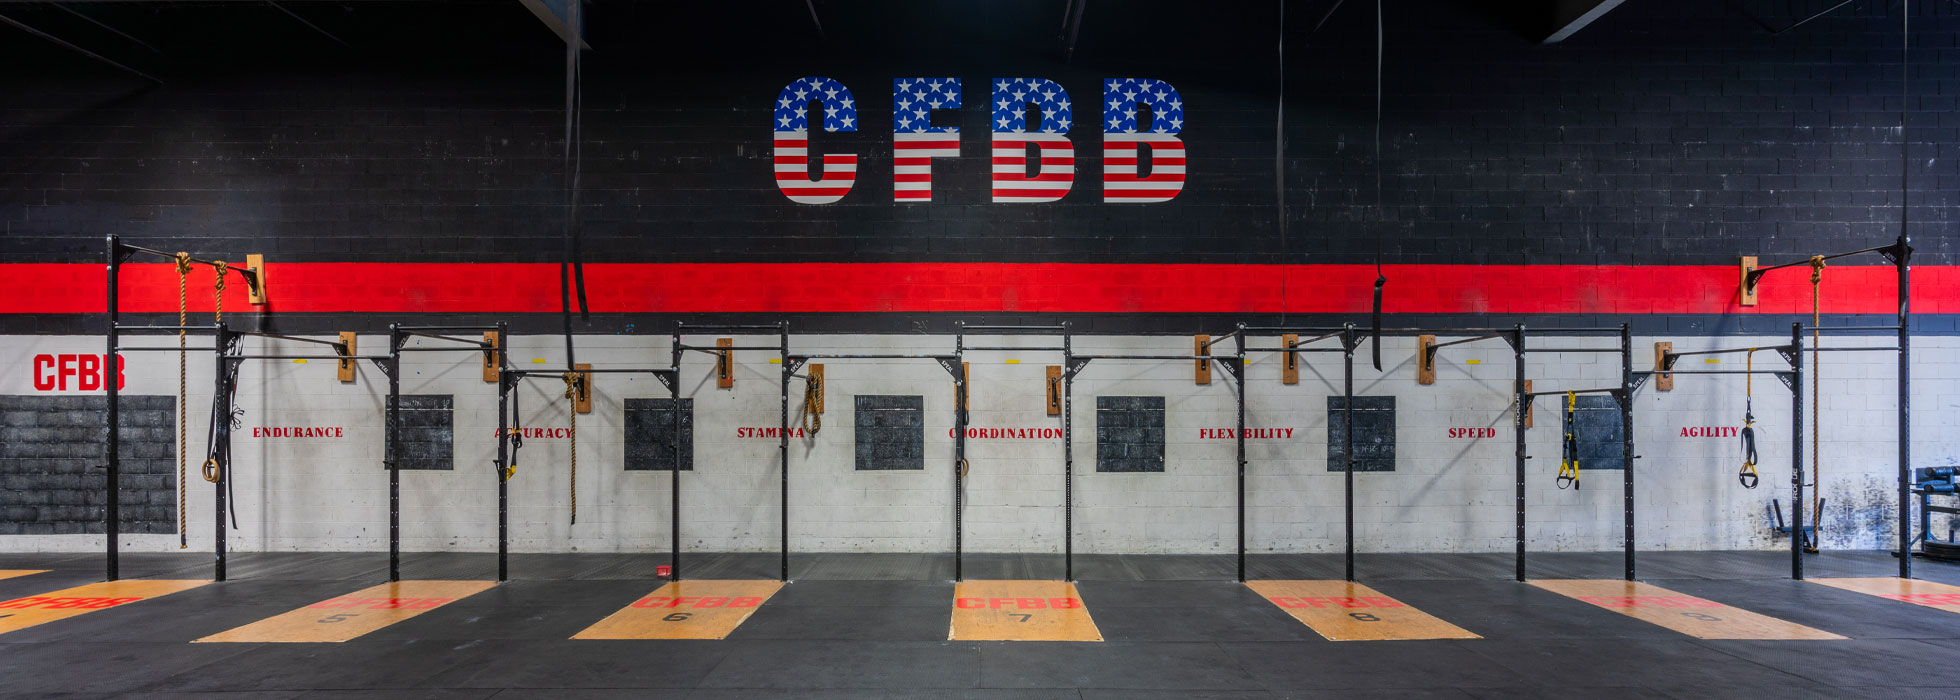 Finding The Best Gyms Near Me In East Brunswick